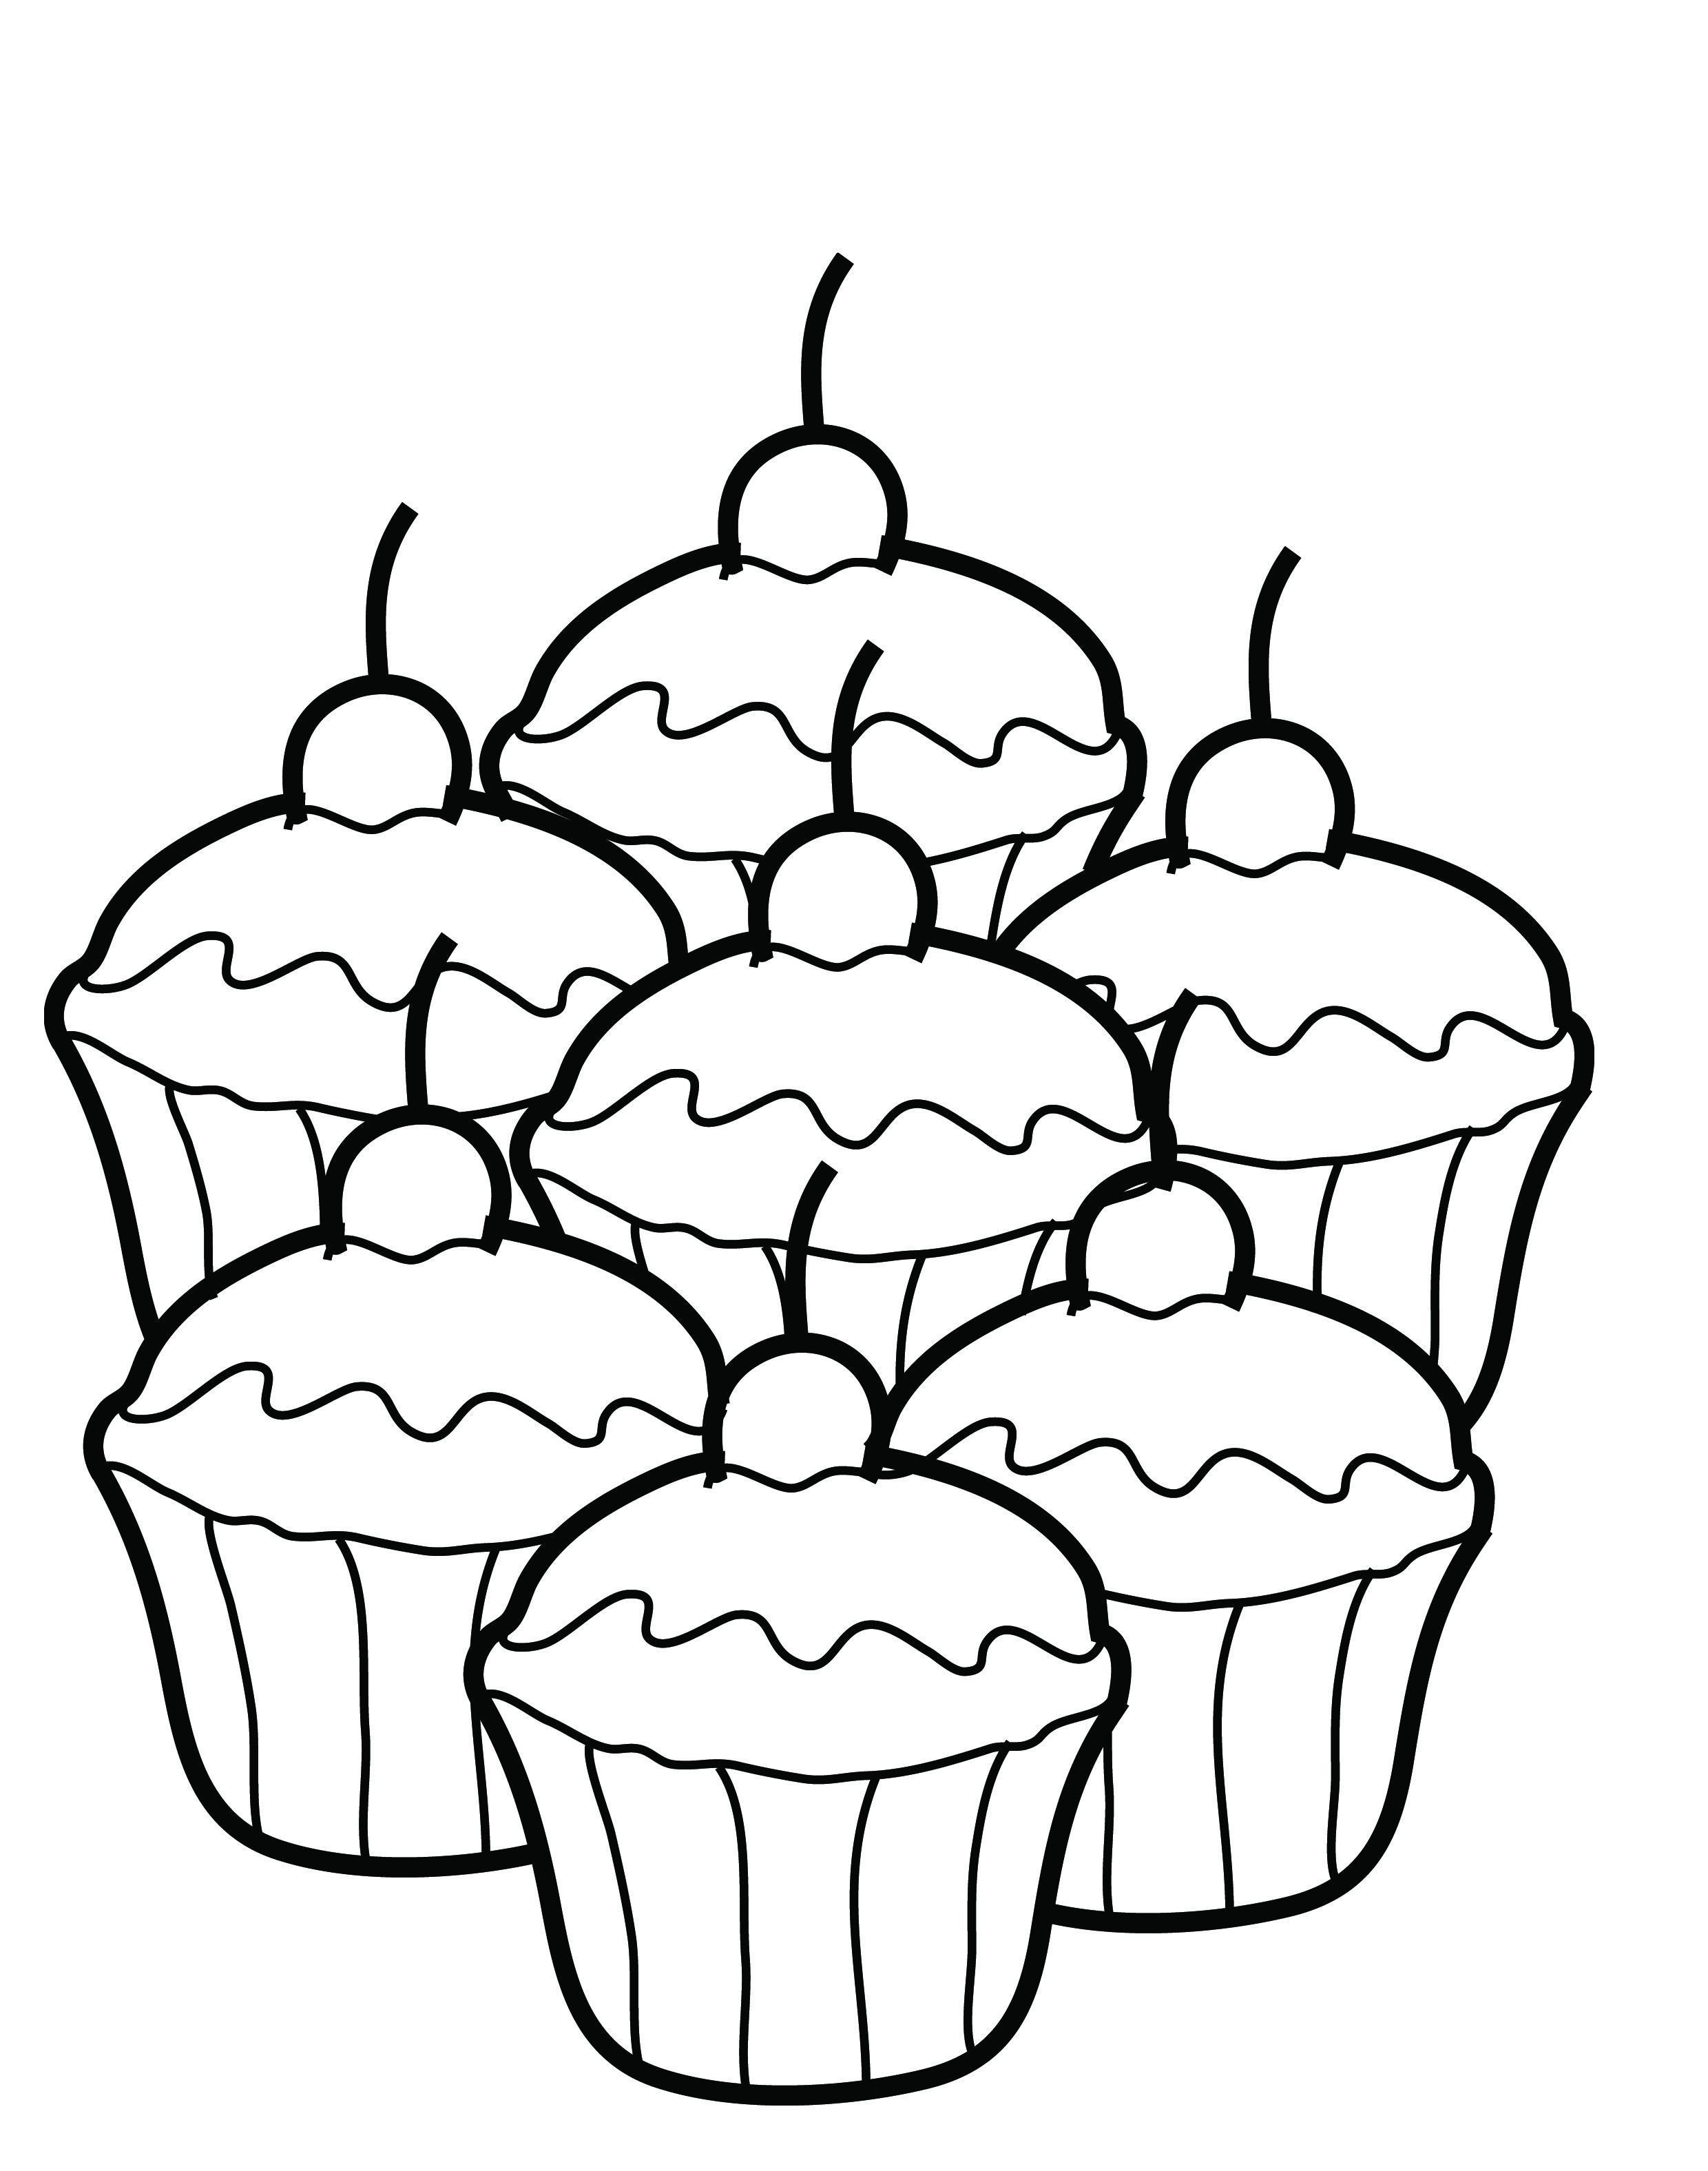 cupcake coloring pages for kids - Kid Coloring Page